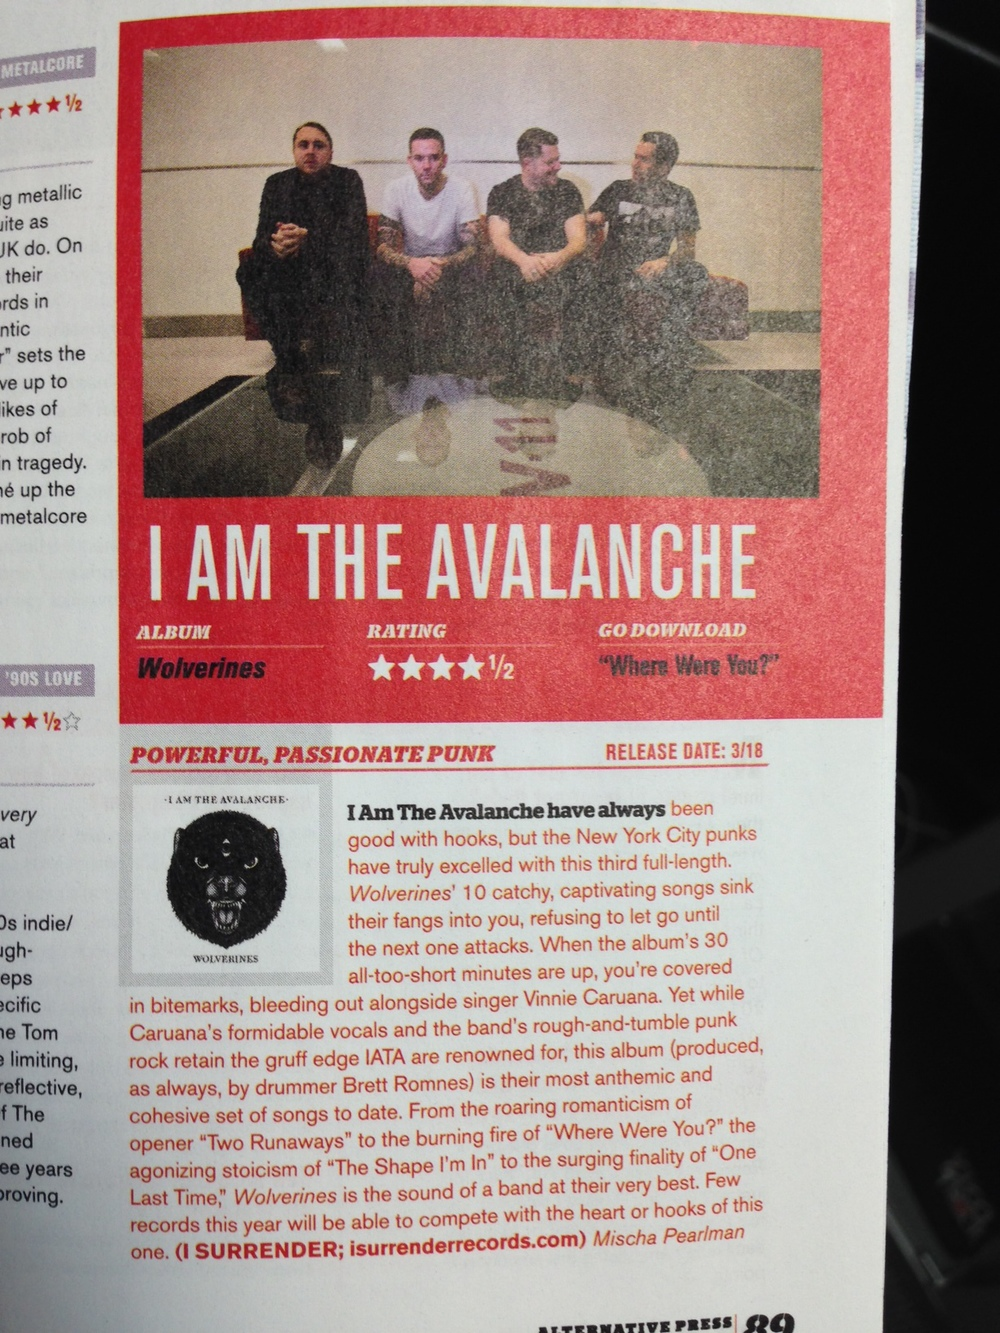 Alternative Press 4.5 out of 5 album review.jpeg